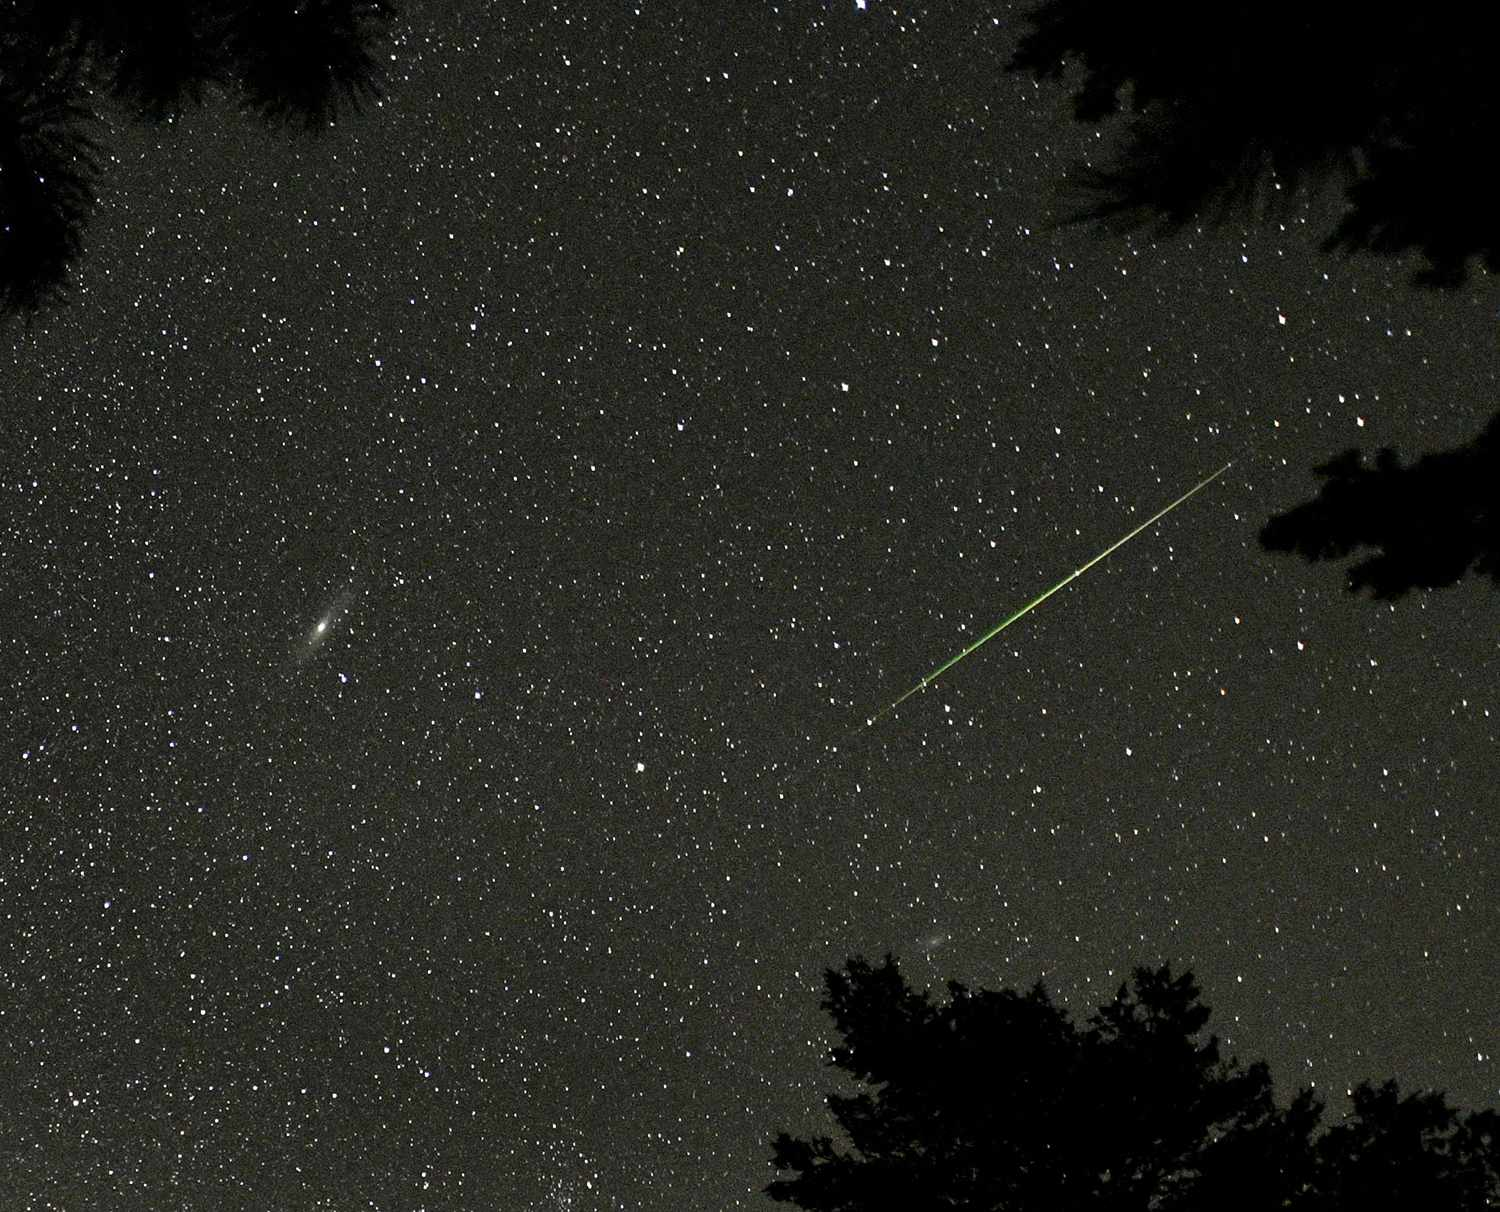 A Perseid meteor seen near the Andromeda Galaxy (the bright smudge on the left of the image, Rocky Mountain National Park, Colorado, US, 12 August 2018. Credit: STAN HONDA/AFP via Getty Images